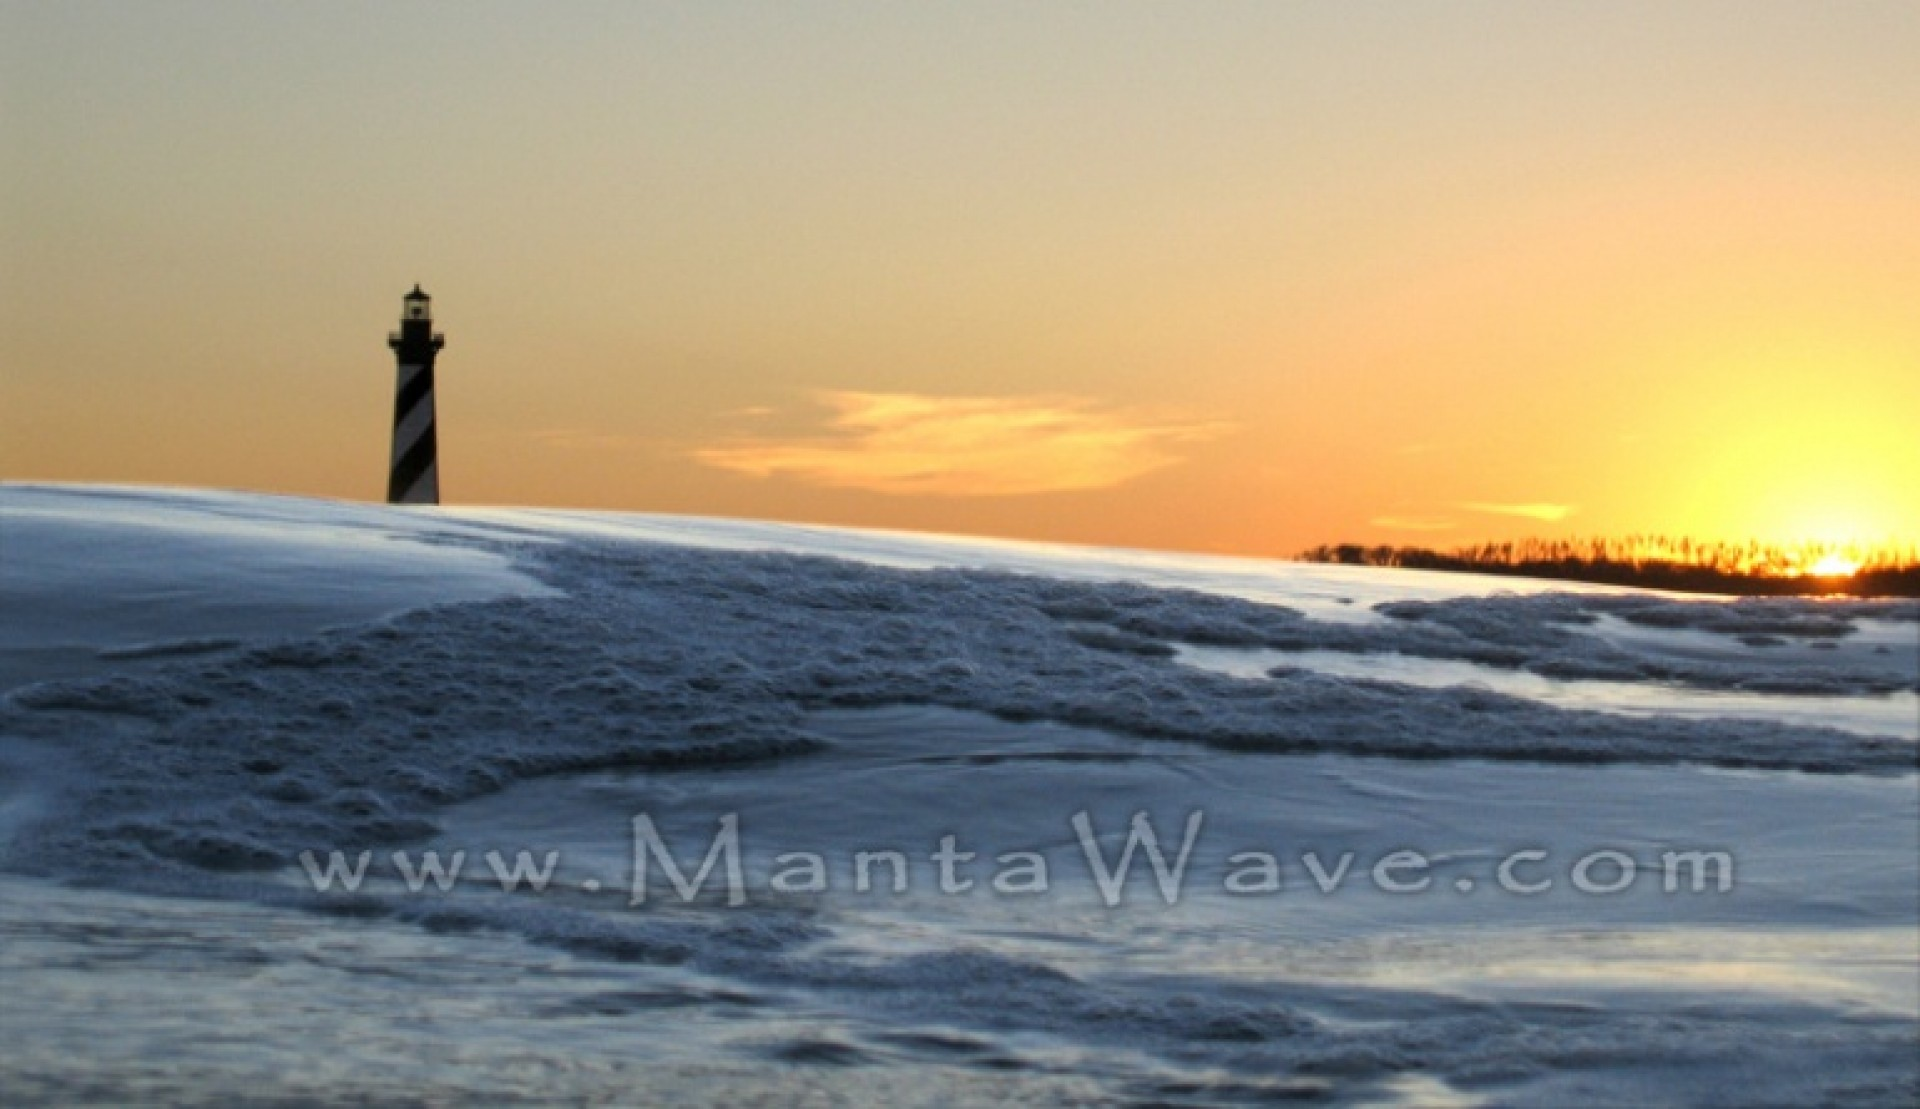 MantaWave's photo of Cape Hatteras